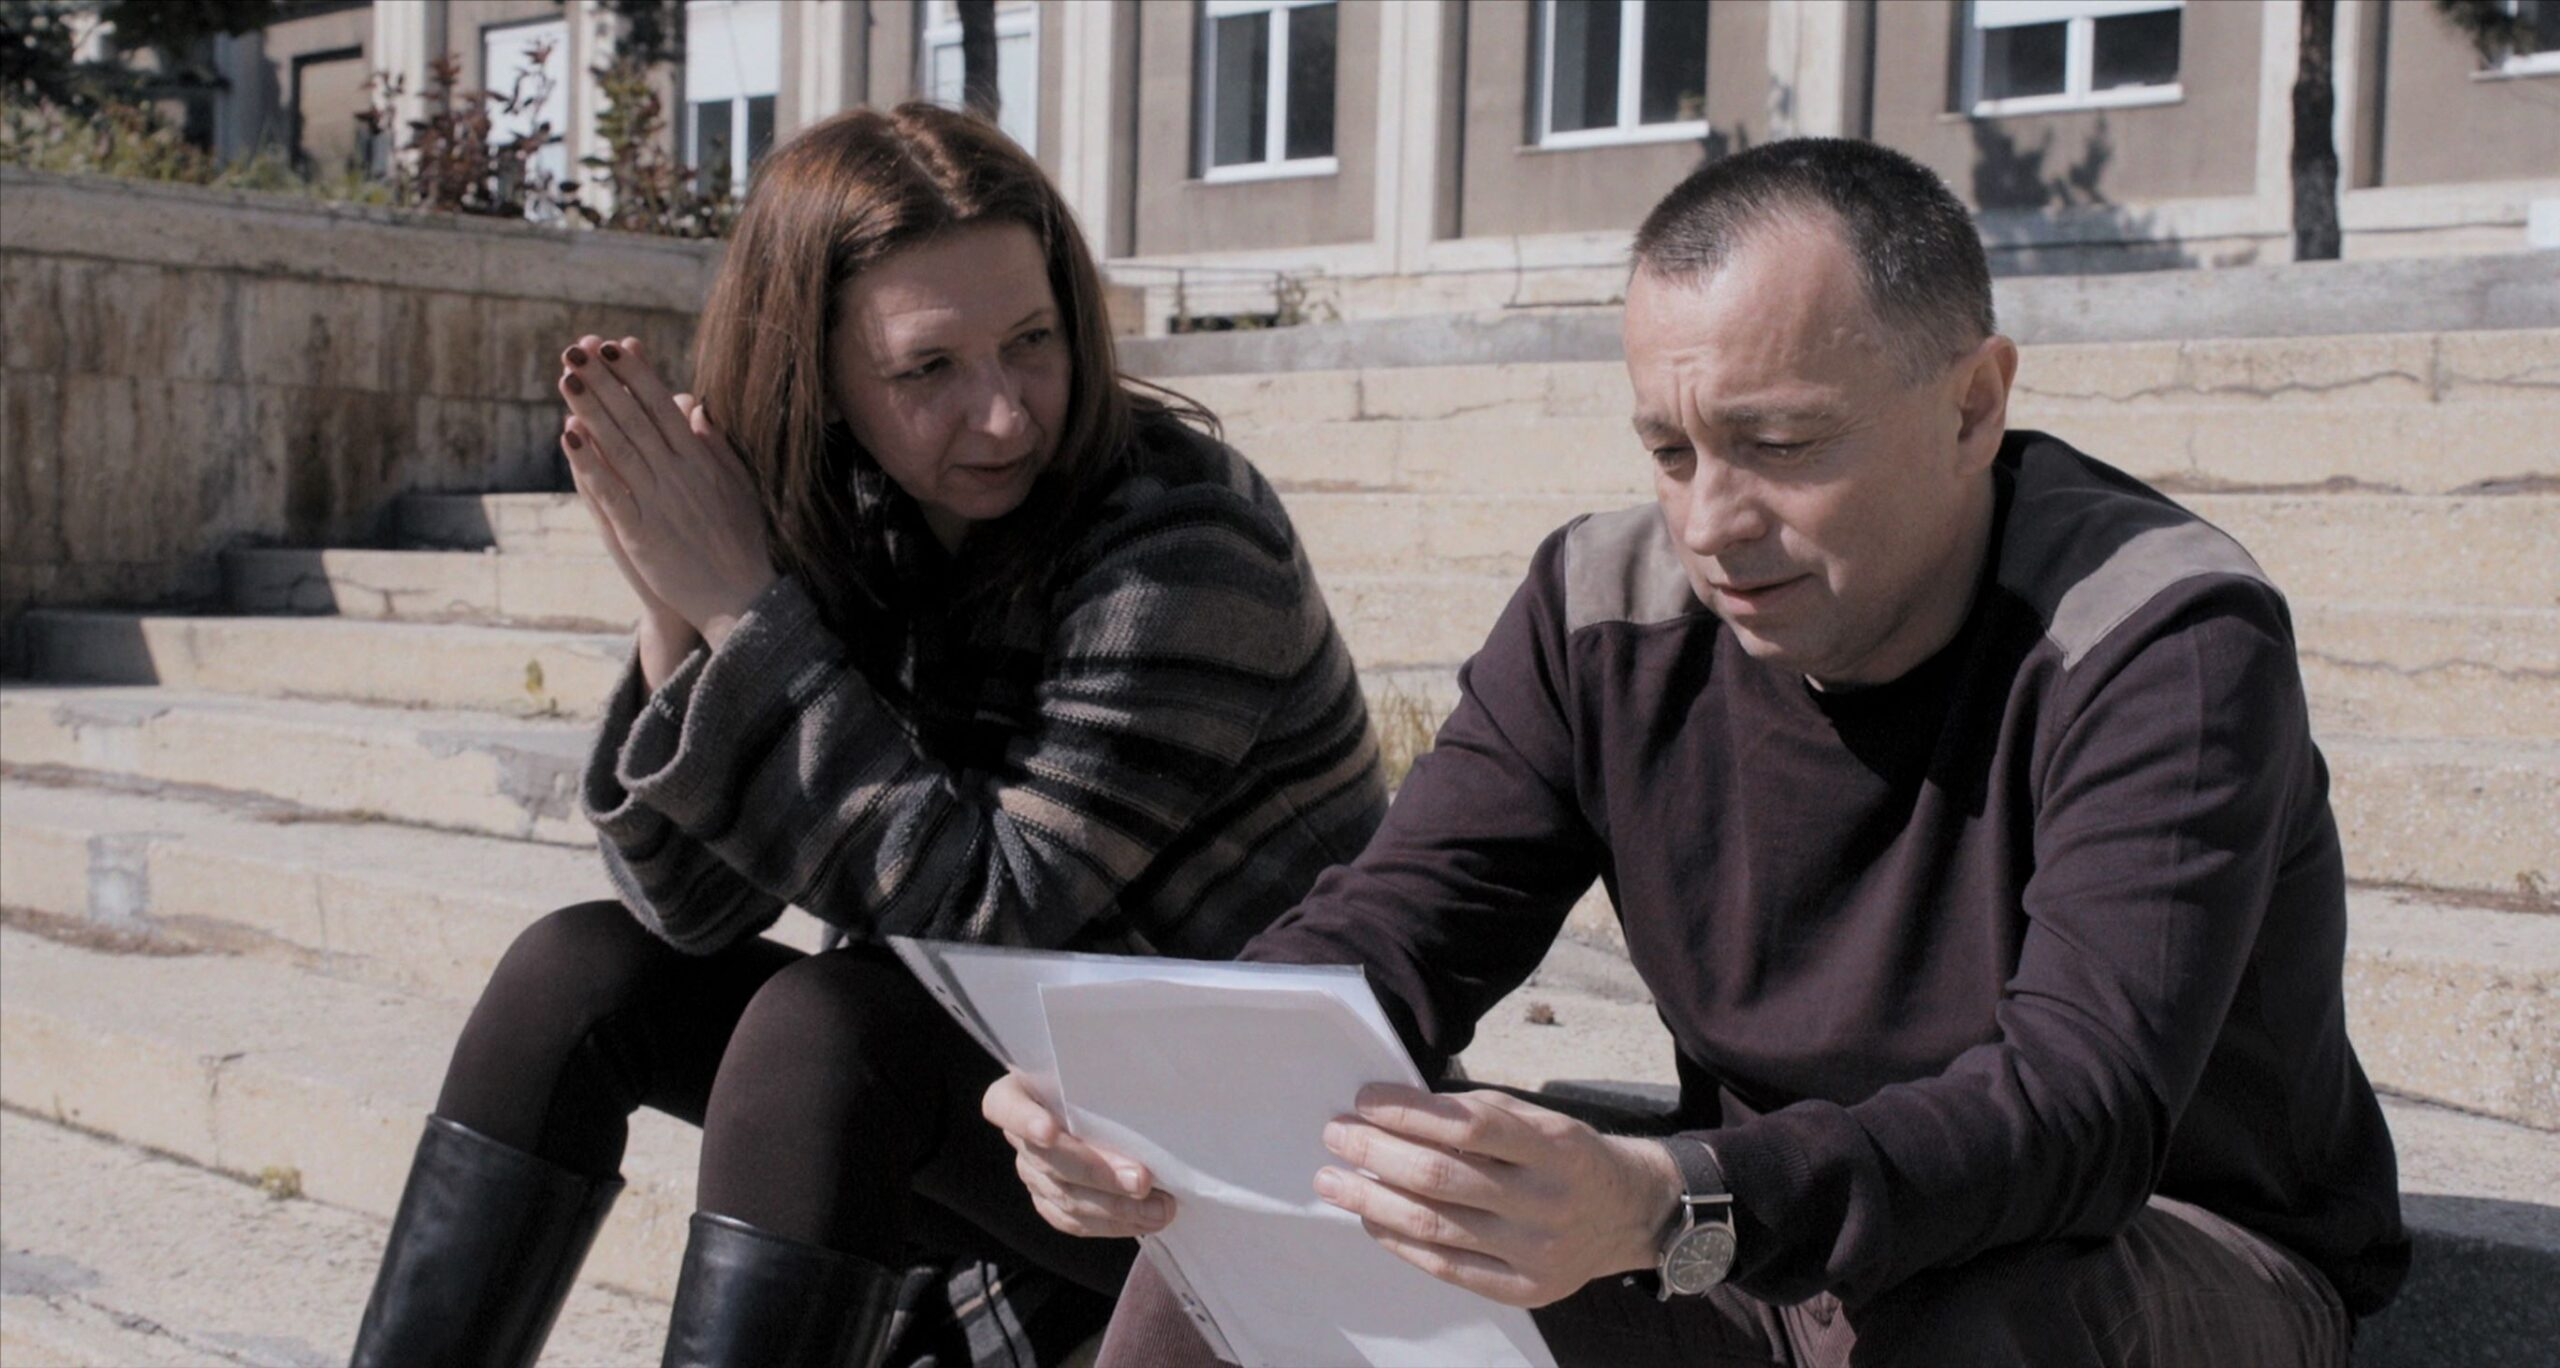 Romanian journalists Mirela Neag and Catalin Tolontan in the Romanian documentary Collective